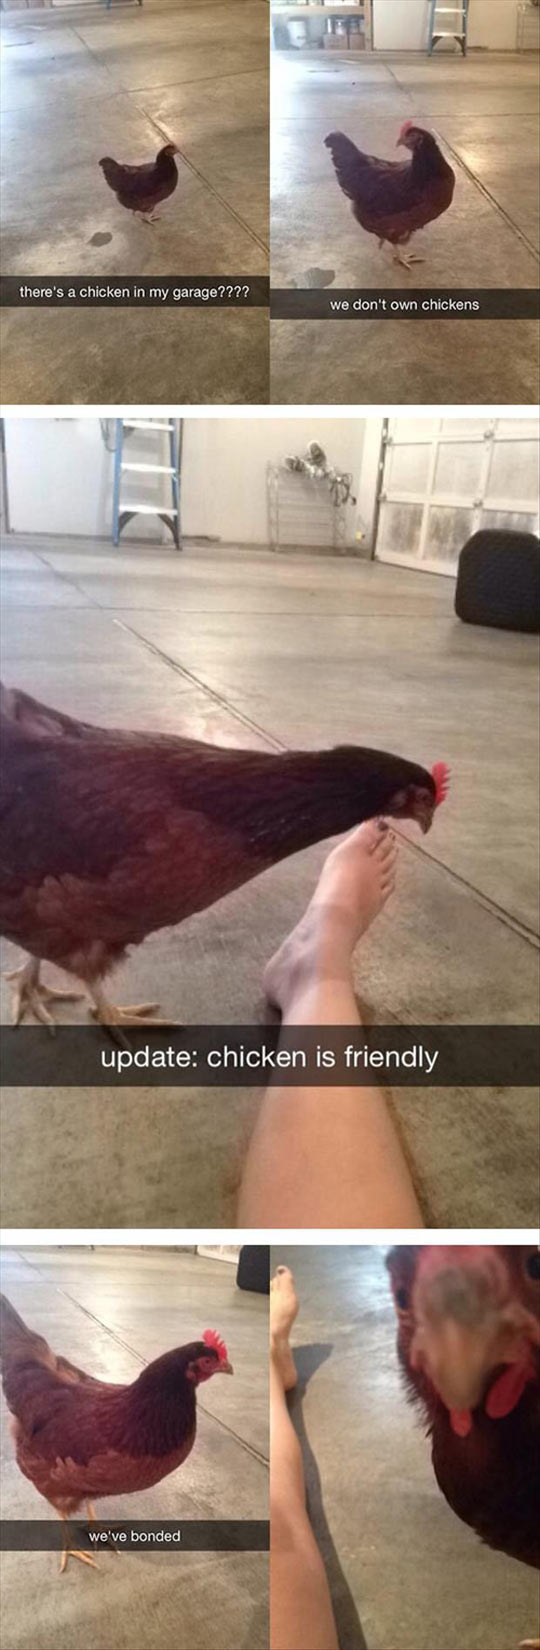 Chicken Friend